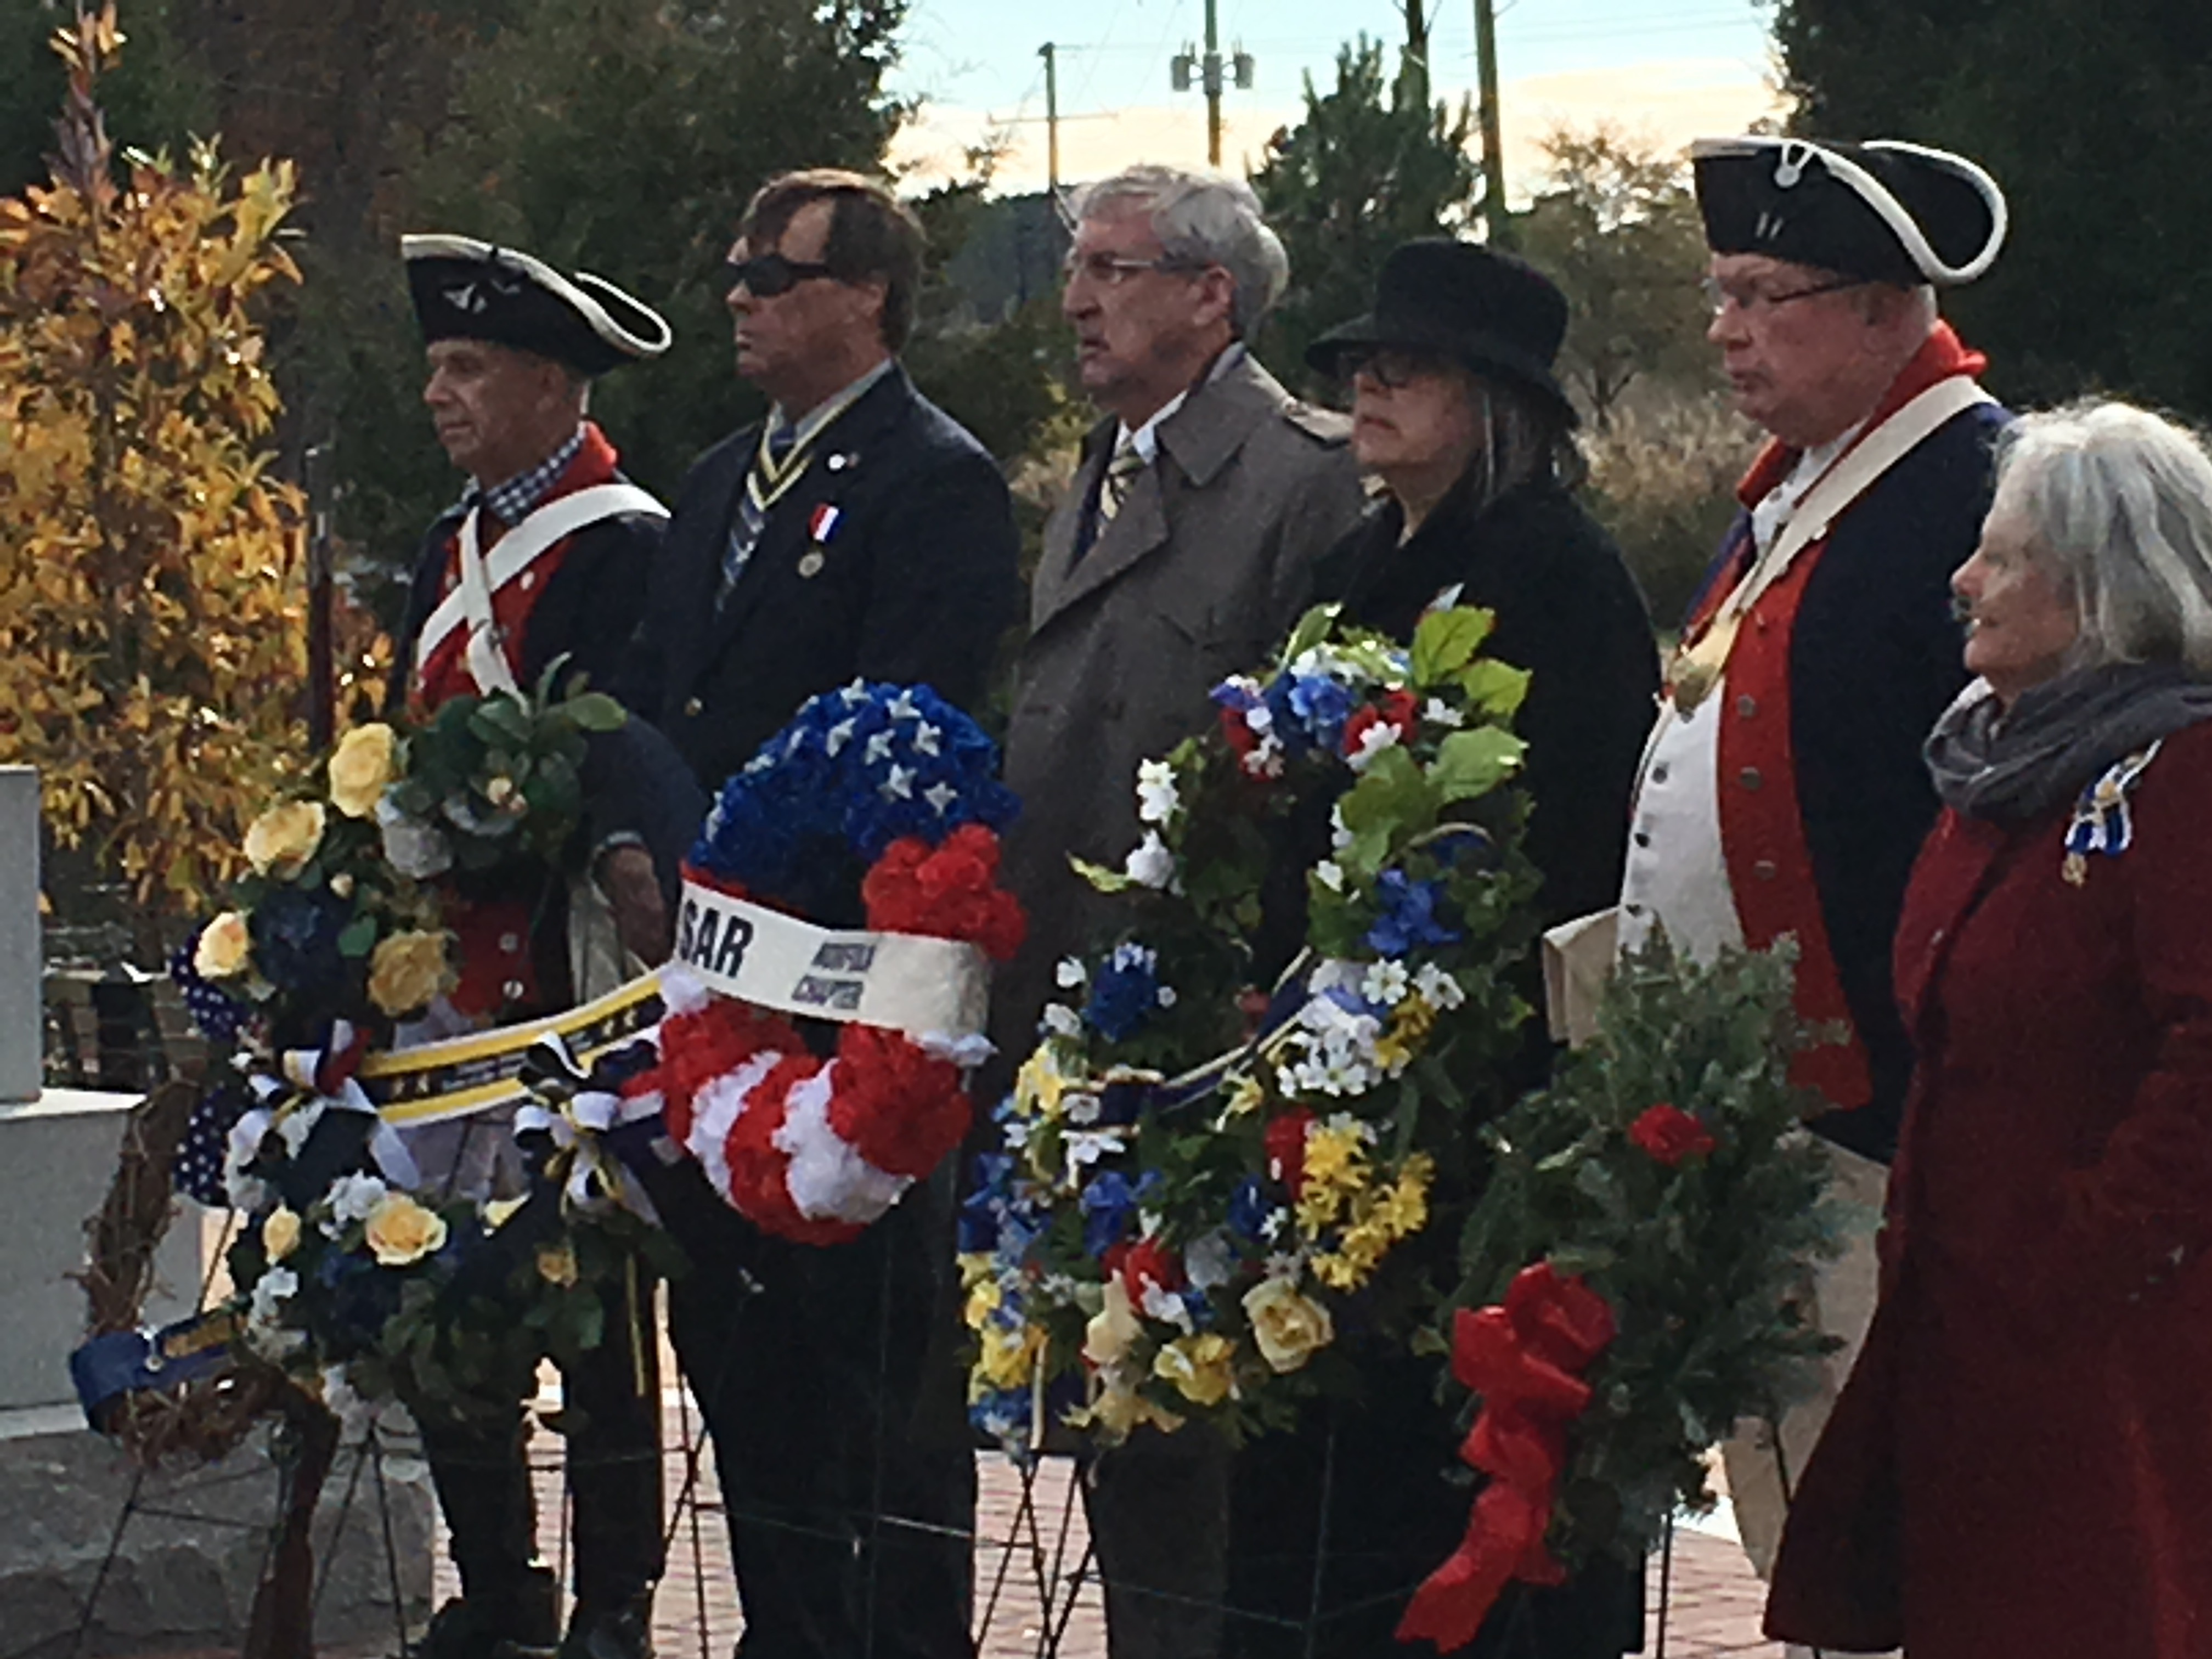 Treasurer and President Elect Kenneth Hawkins presents the Norfolk Chapter SAR wreath at the Battle of Great Bridge Monument